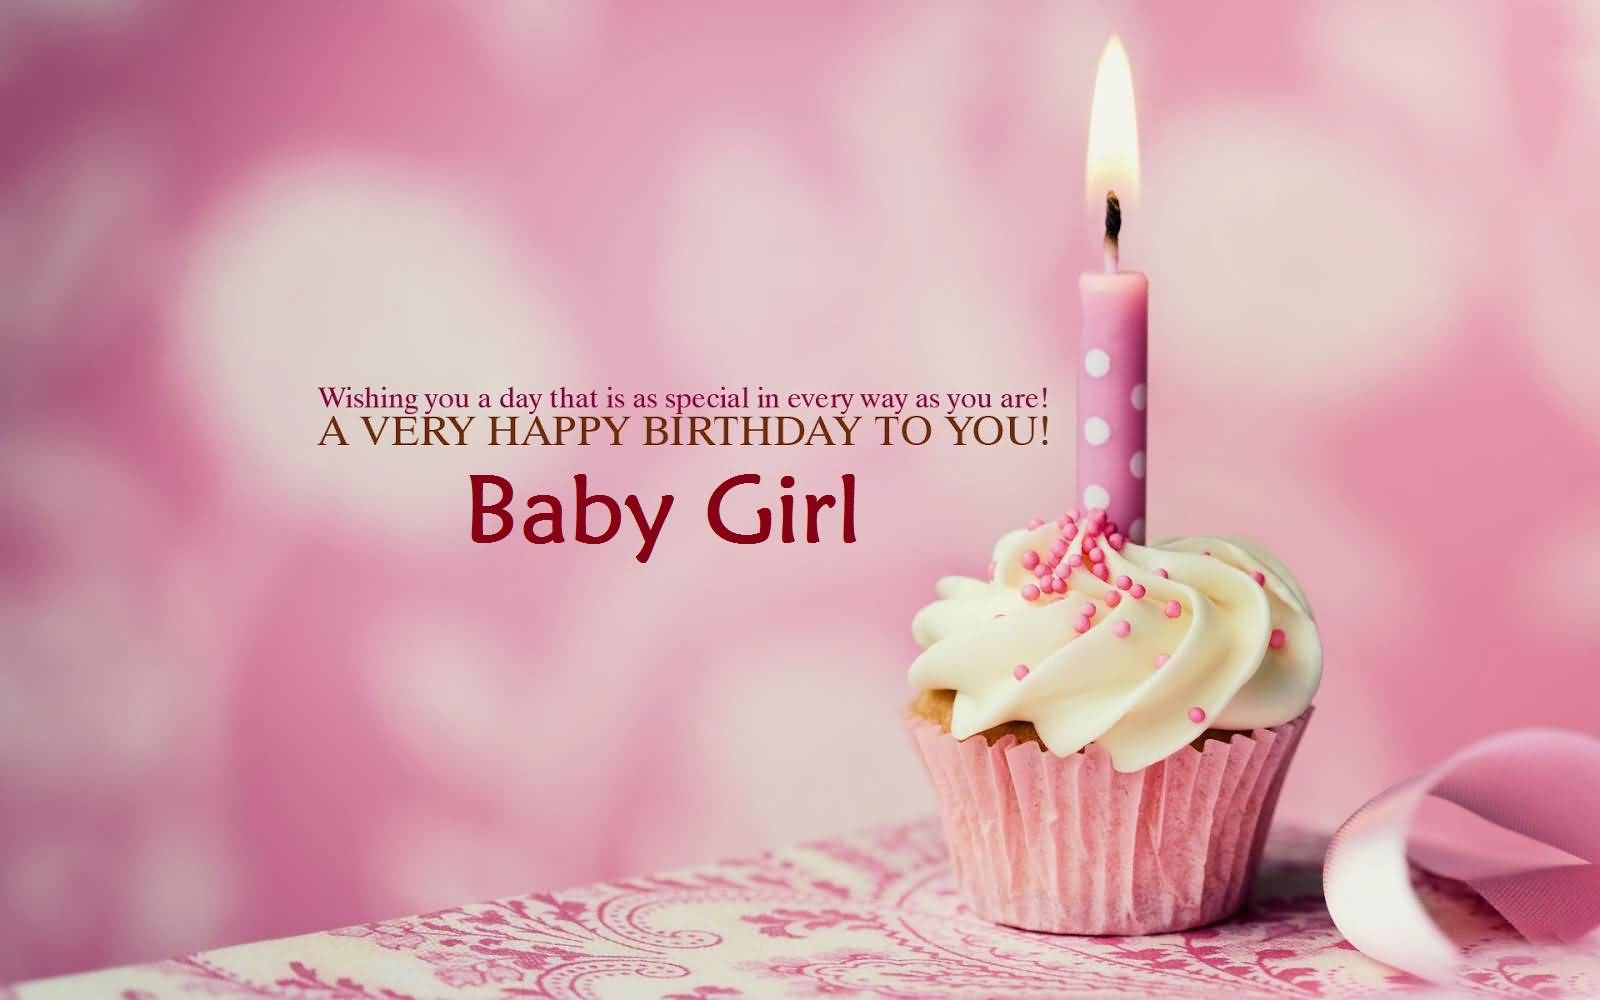 Birthday wishes new born baby girl 16 best ever birthday greeting card for nephew from parents kristyandbryce Image collections